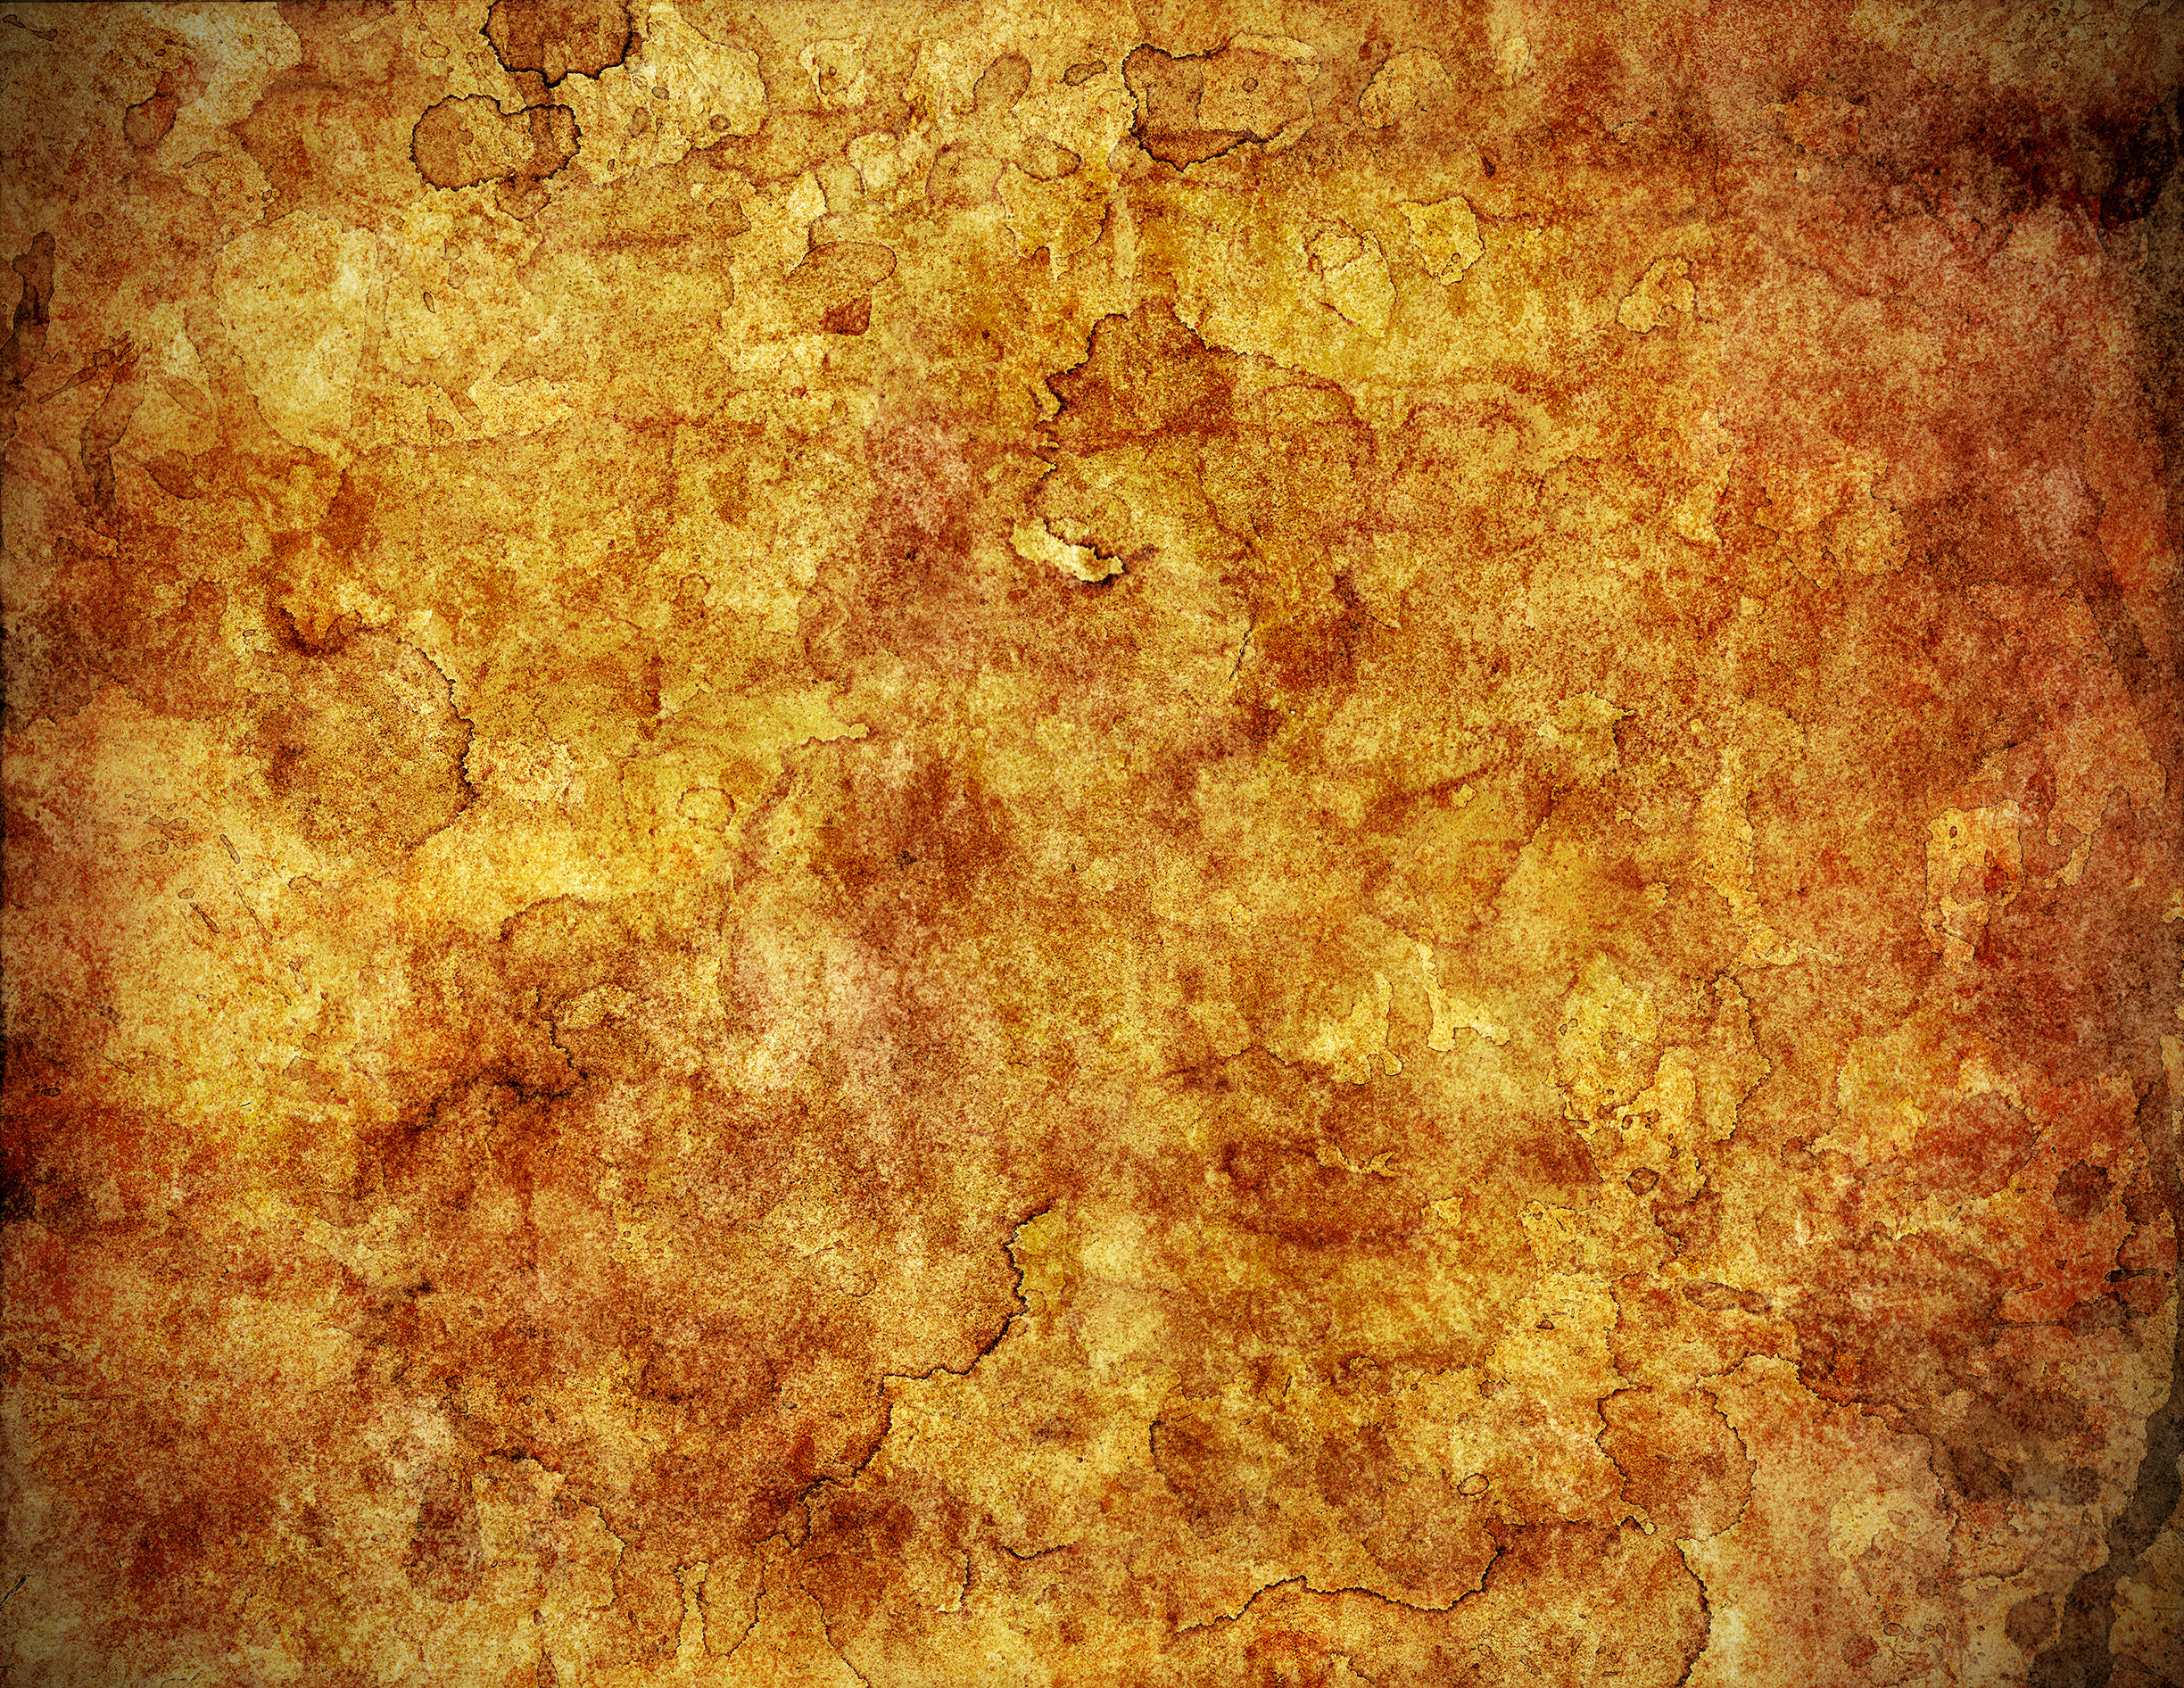 Free High Resolution Textures for Photoshop